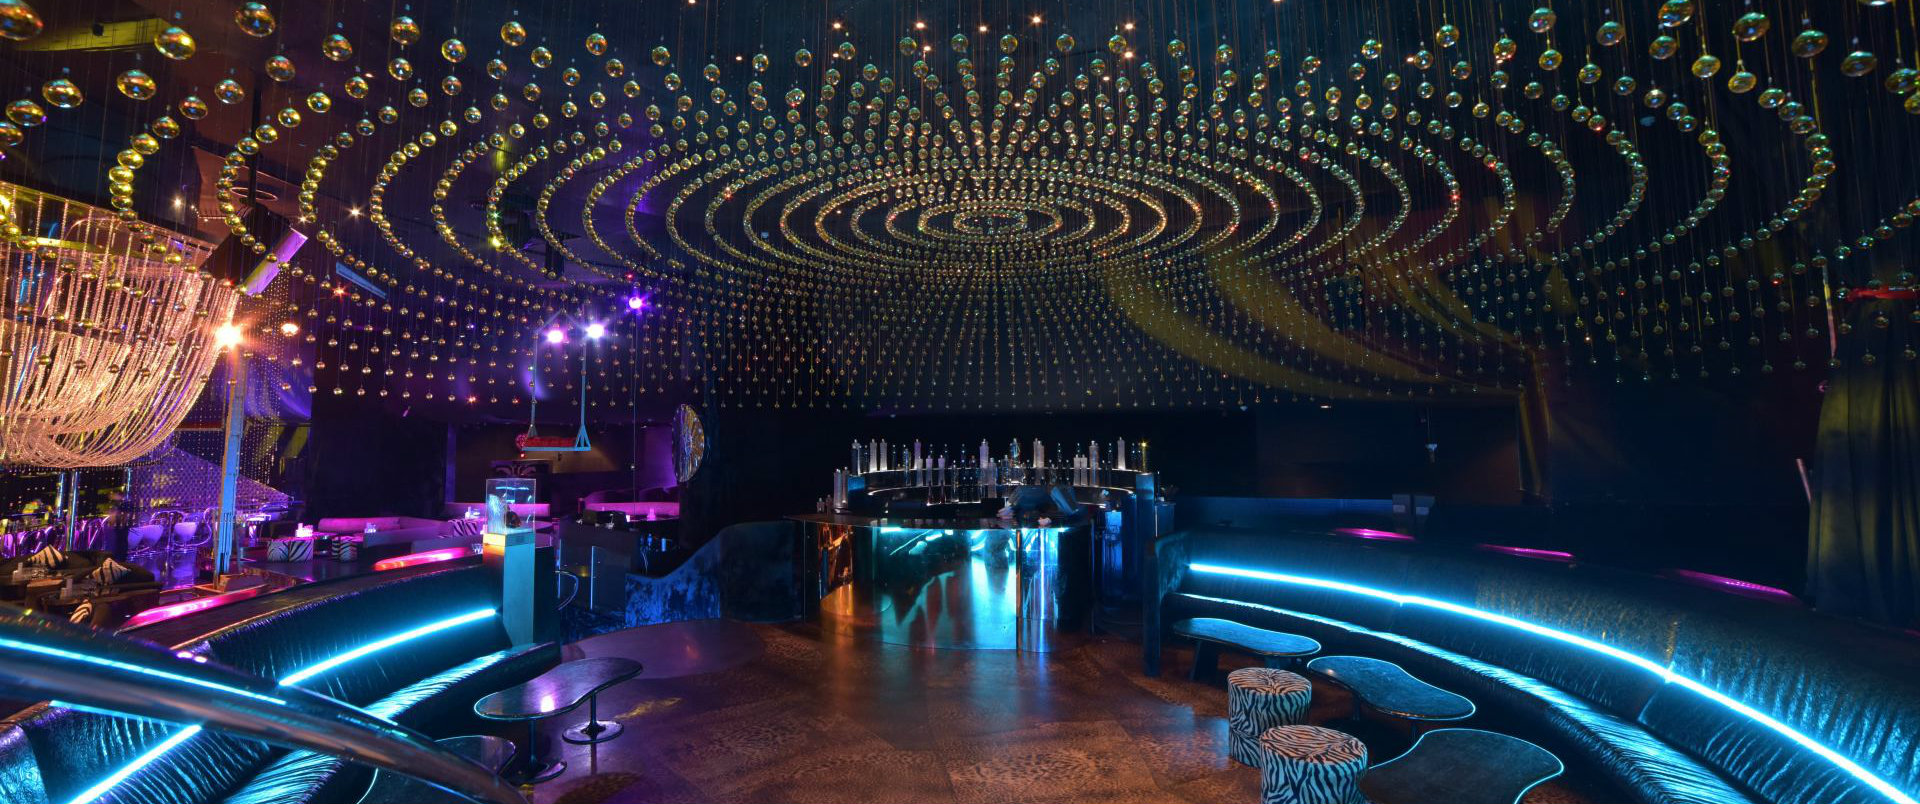 Night Club with Swarovski Crystals by Roberto Cavalli Yachts Top 5 Most Expensive Design Luxury Yachts cover3 Yachts Top 5 Most Expensive Design Luxury Yachts cover3